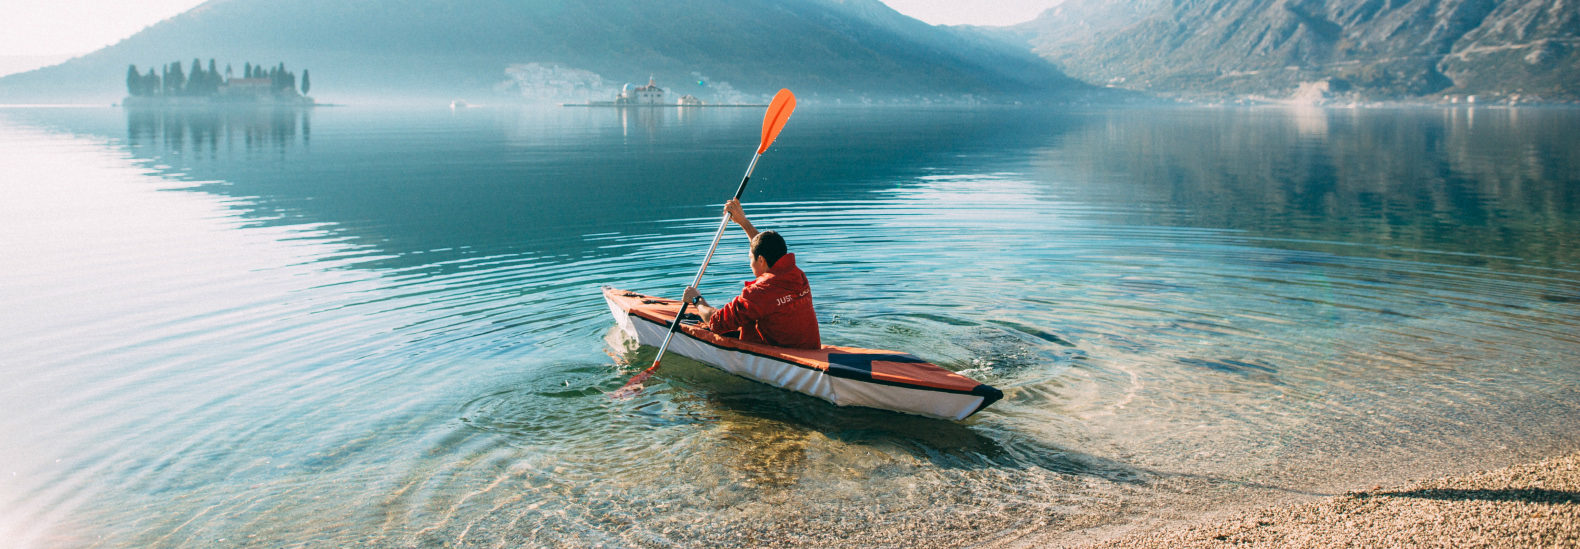 Foldable, lightweight kayak assembles in 10 minutes